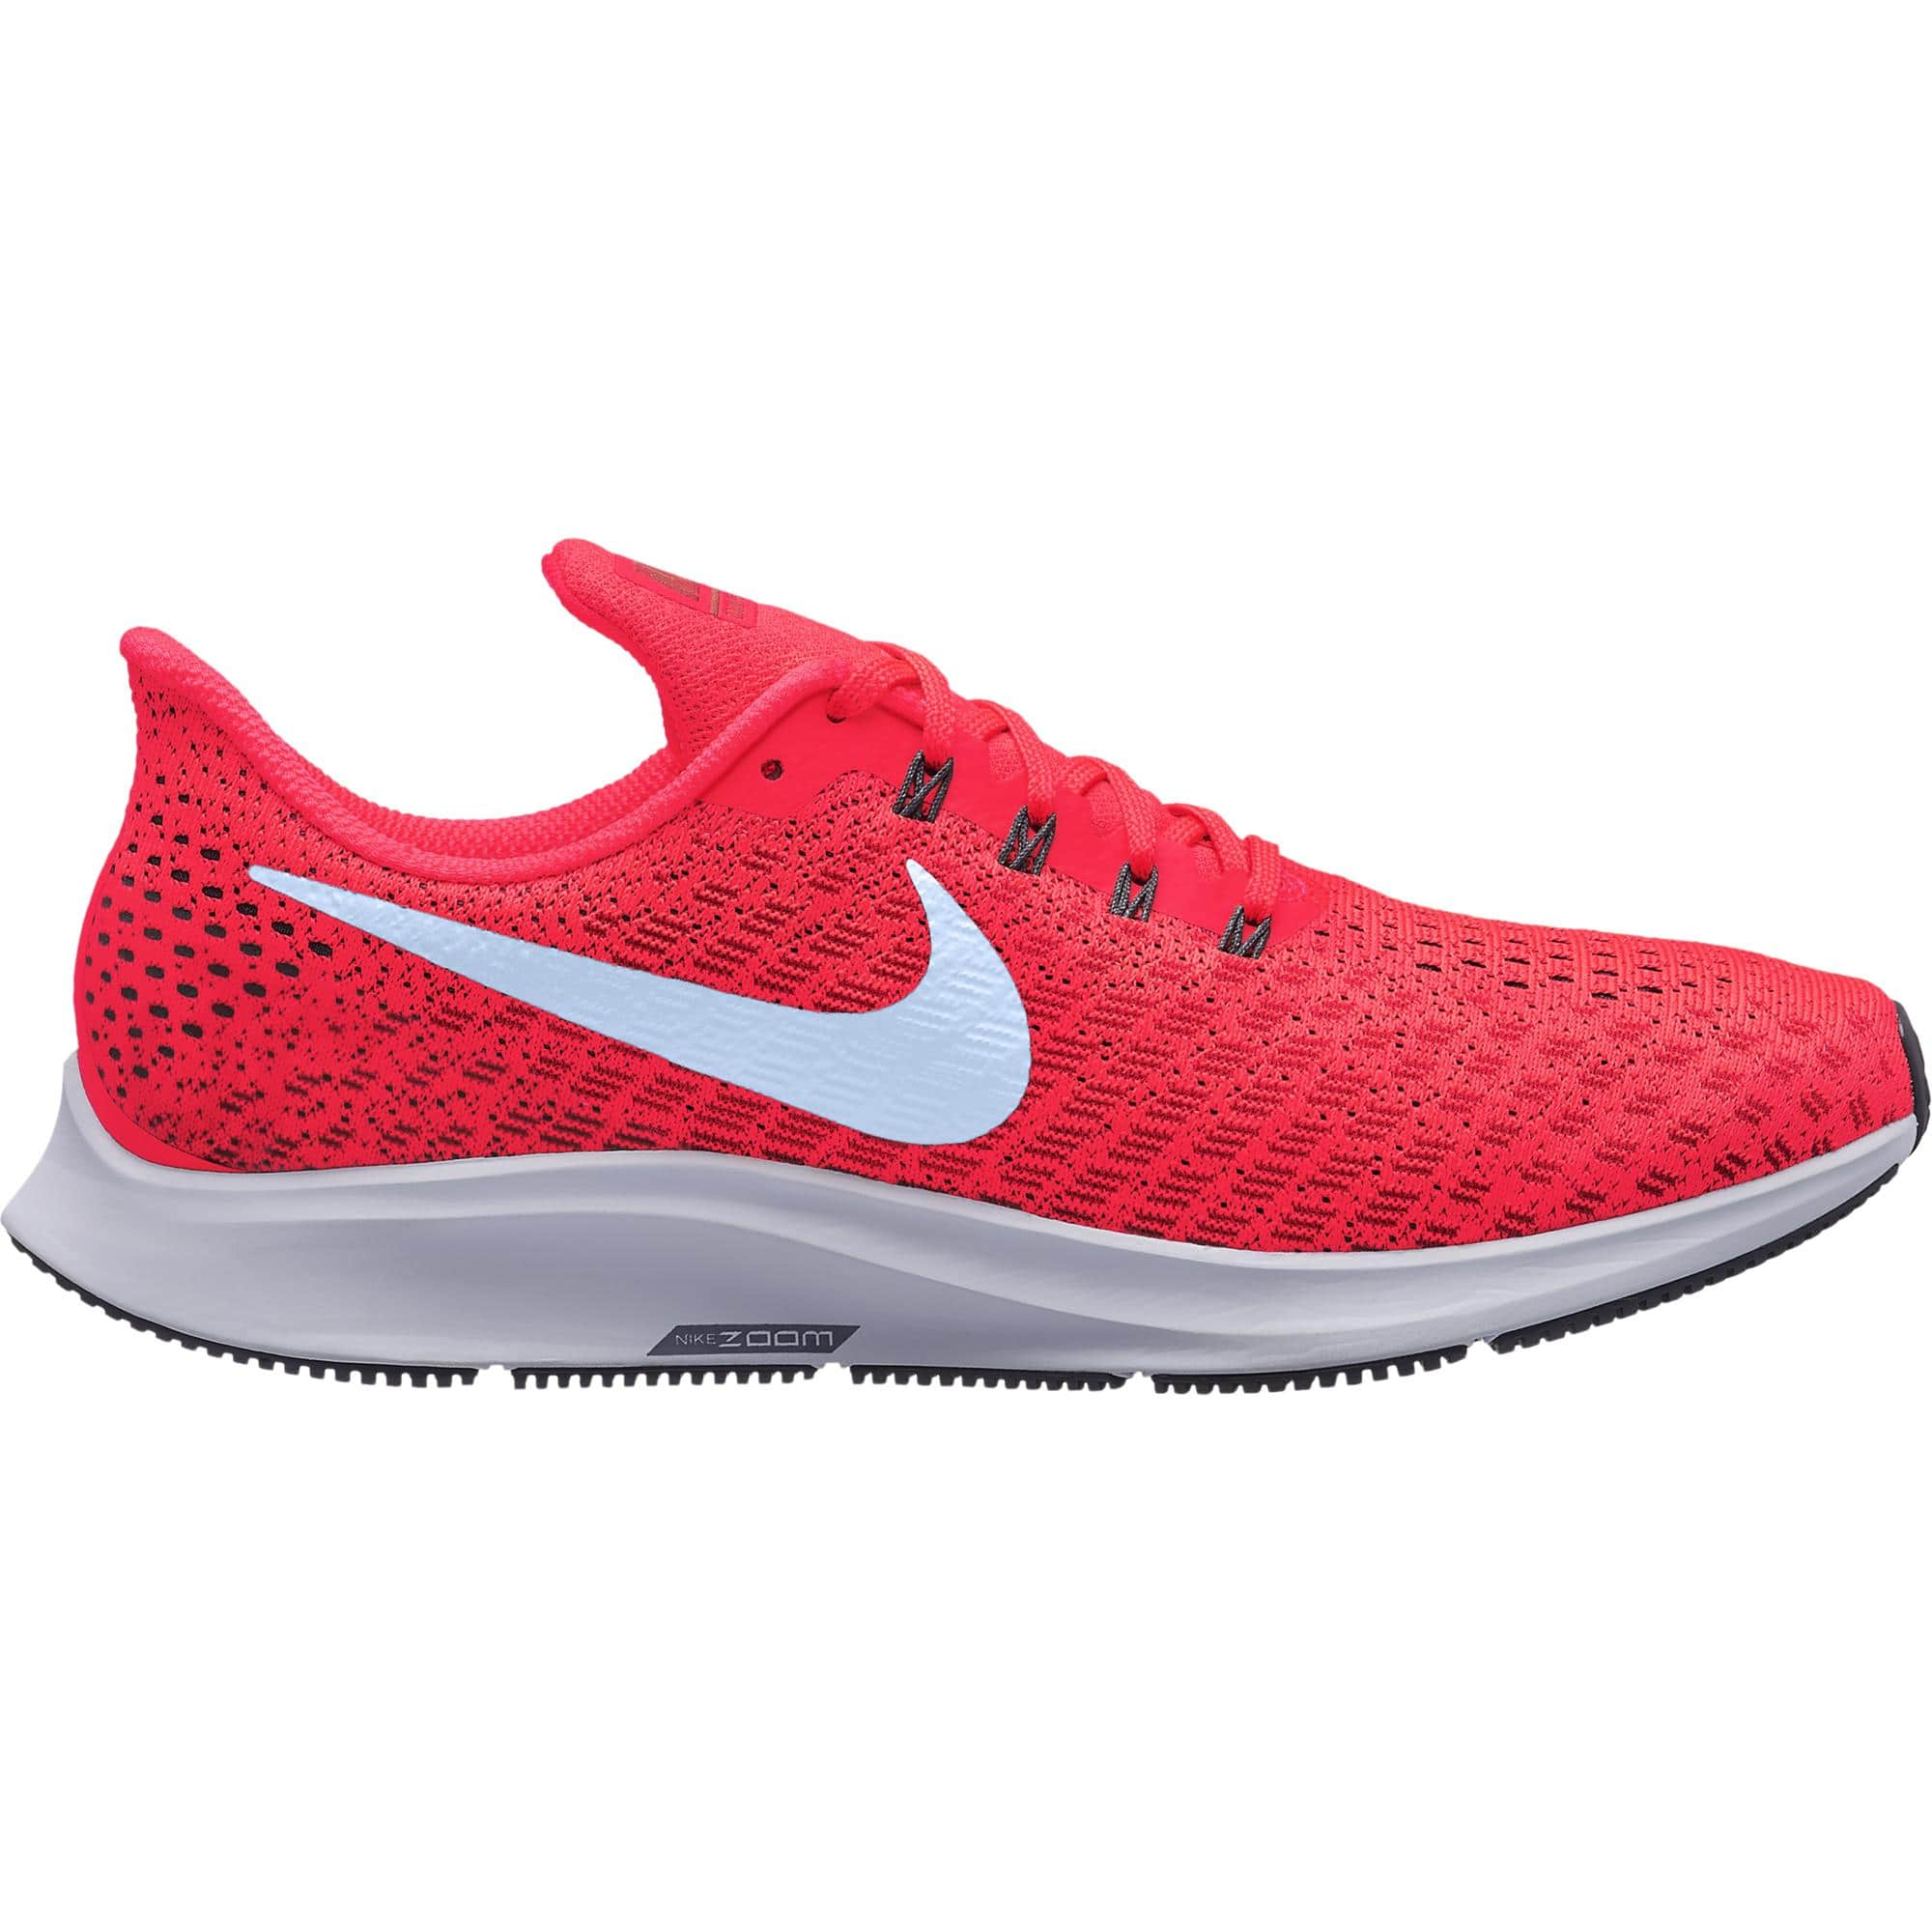 d969fcd962023 Men s Nike Air Zoom Pegasus 35 -  39.99 - Foot Locker In-Store - YMMV